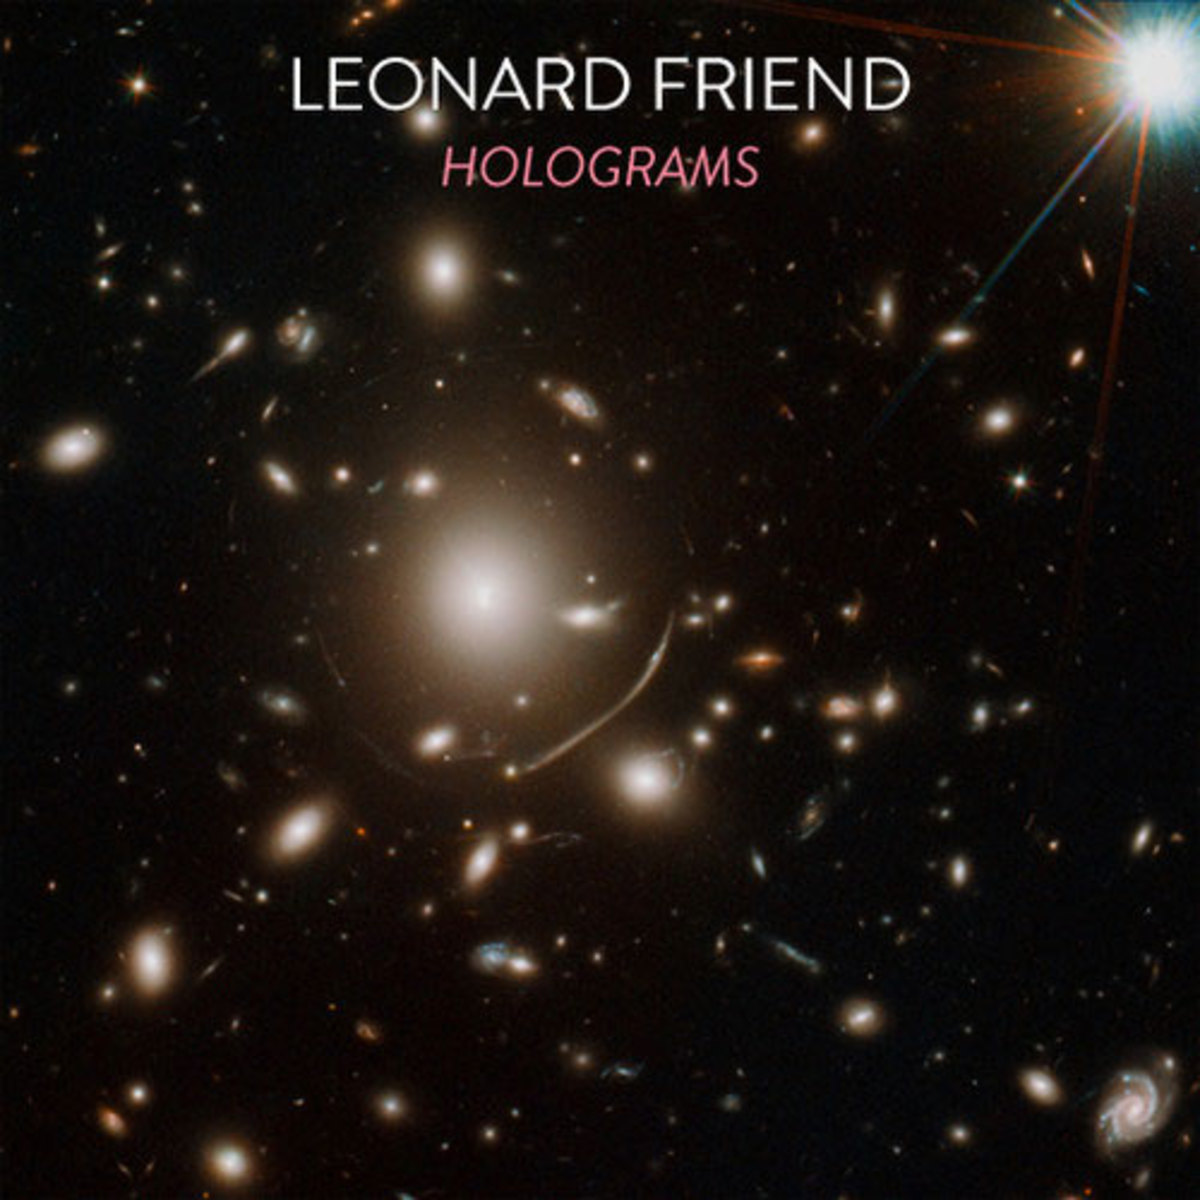 leonardfriend-hologram.jpg